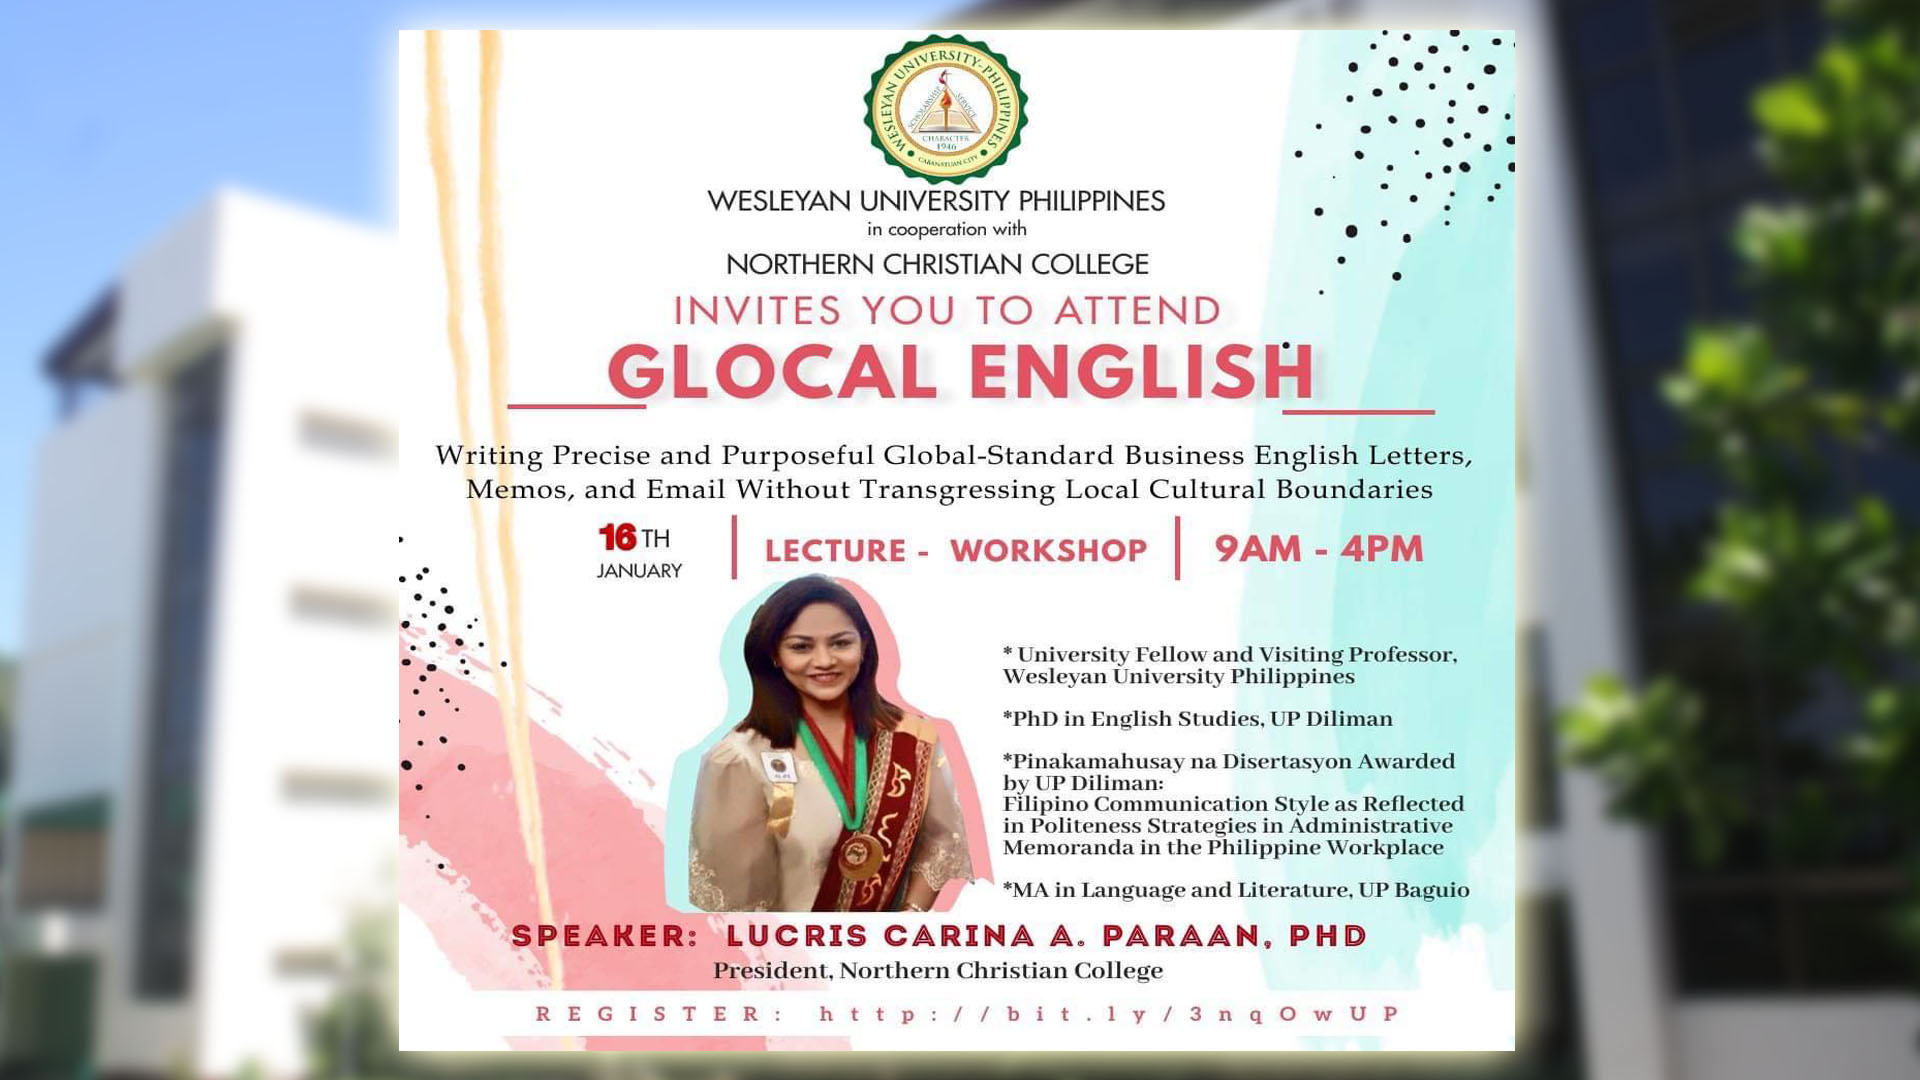 INVITES YOU TO ATTEND GLOCAL ENGLISH